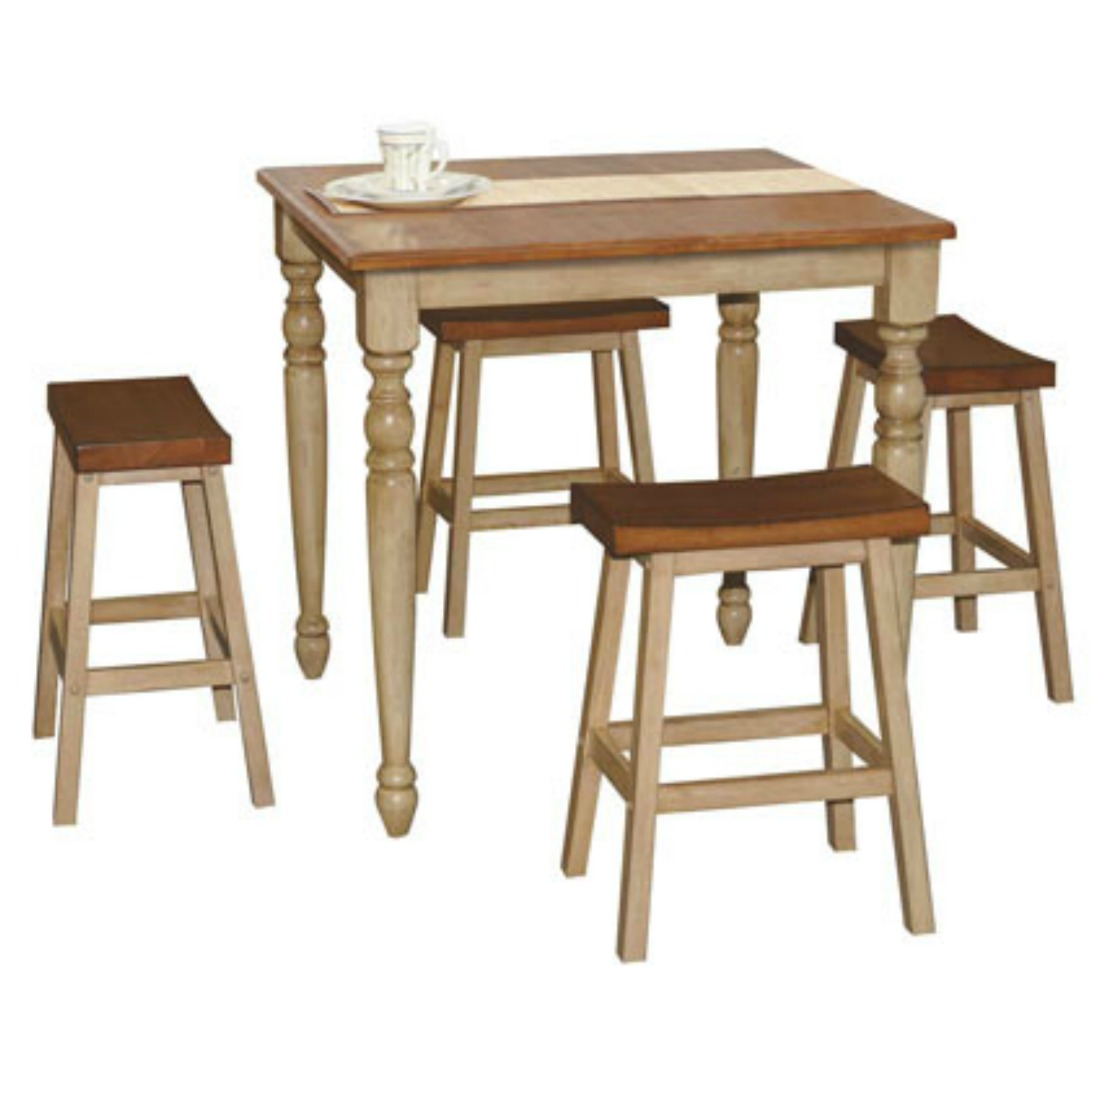 5 Piece Tall Dining Set Almond Wheat By Winners Only Stewart Roth Furniture